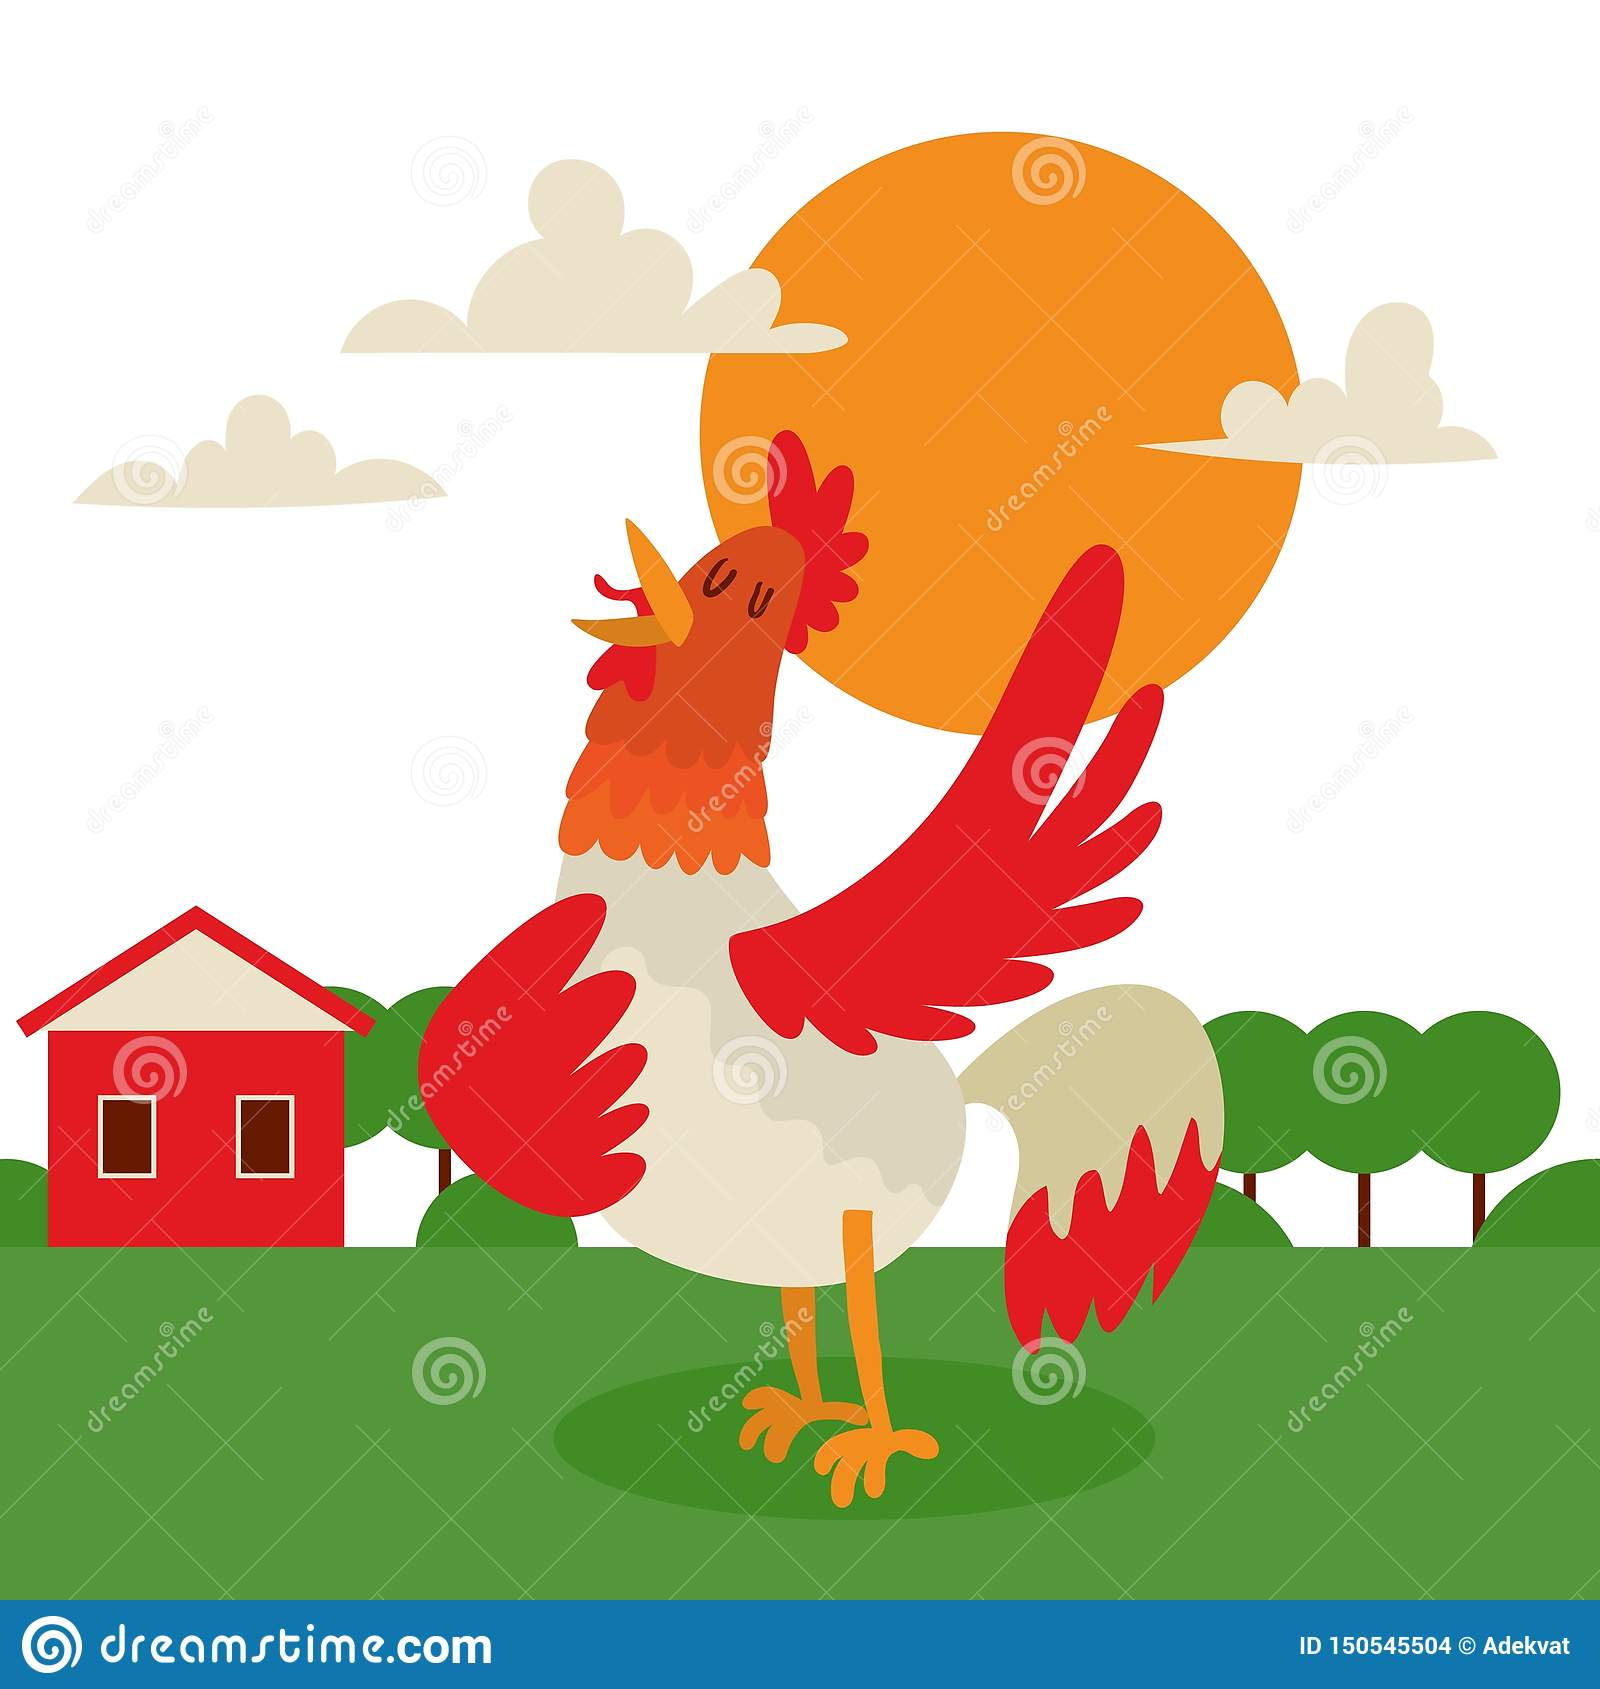 Rooster singing or performing song on country land background banner vector illustration. Farm with bright plumage